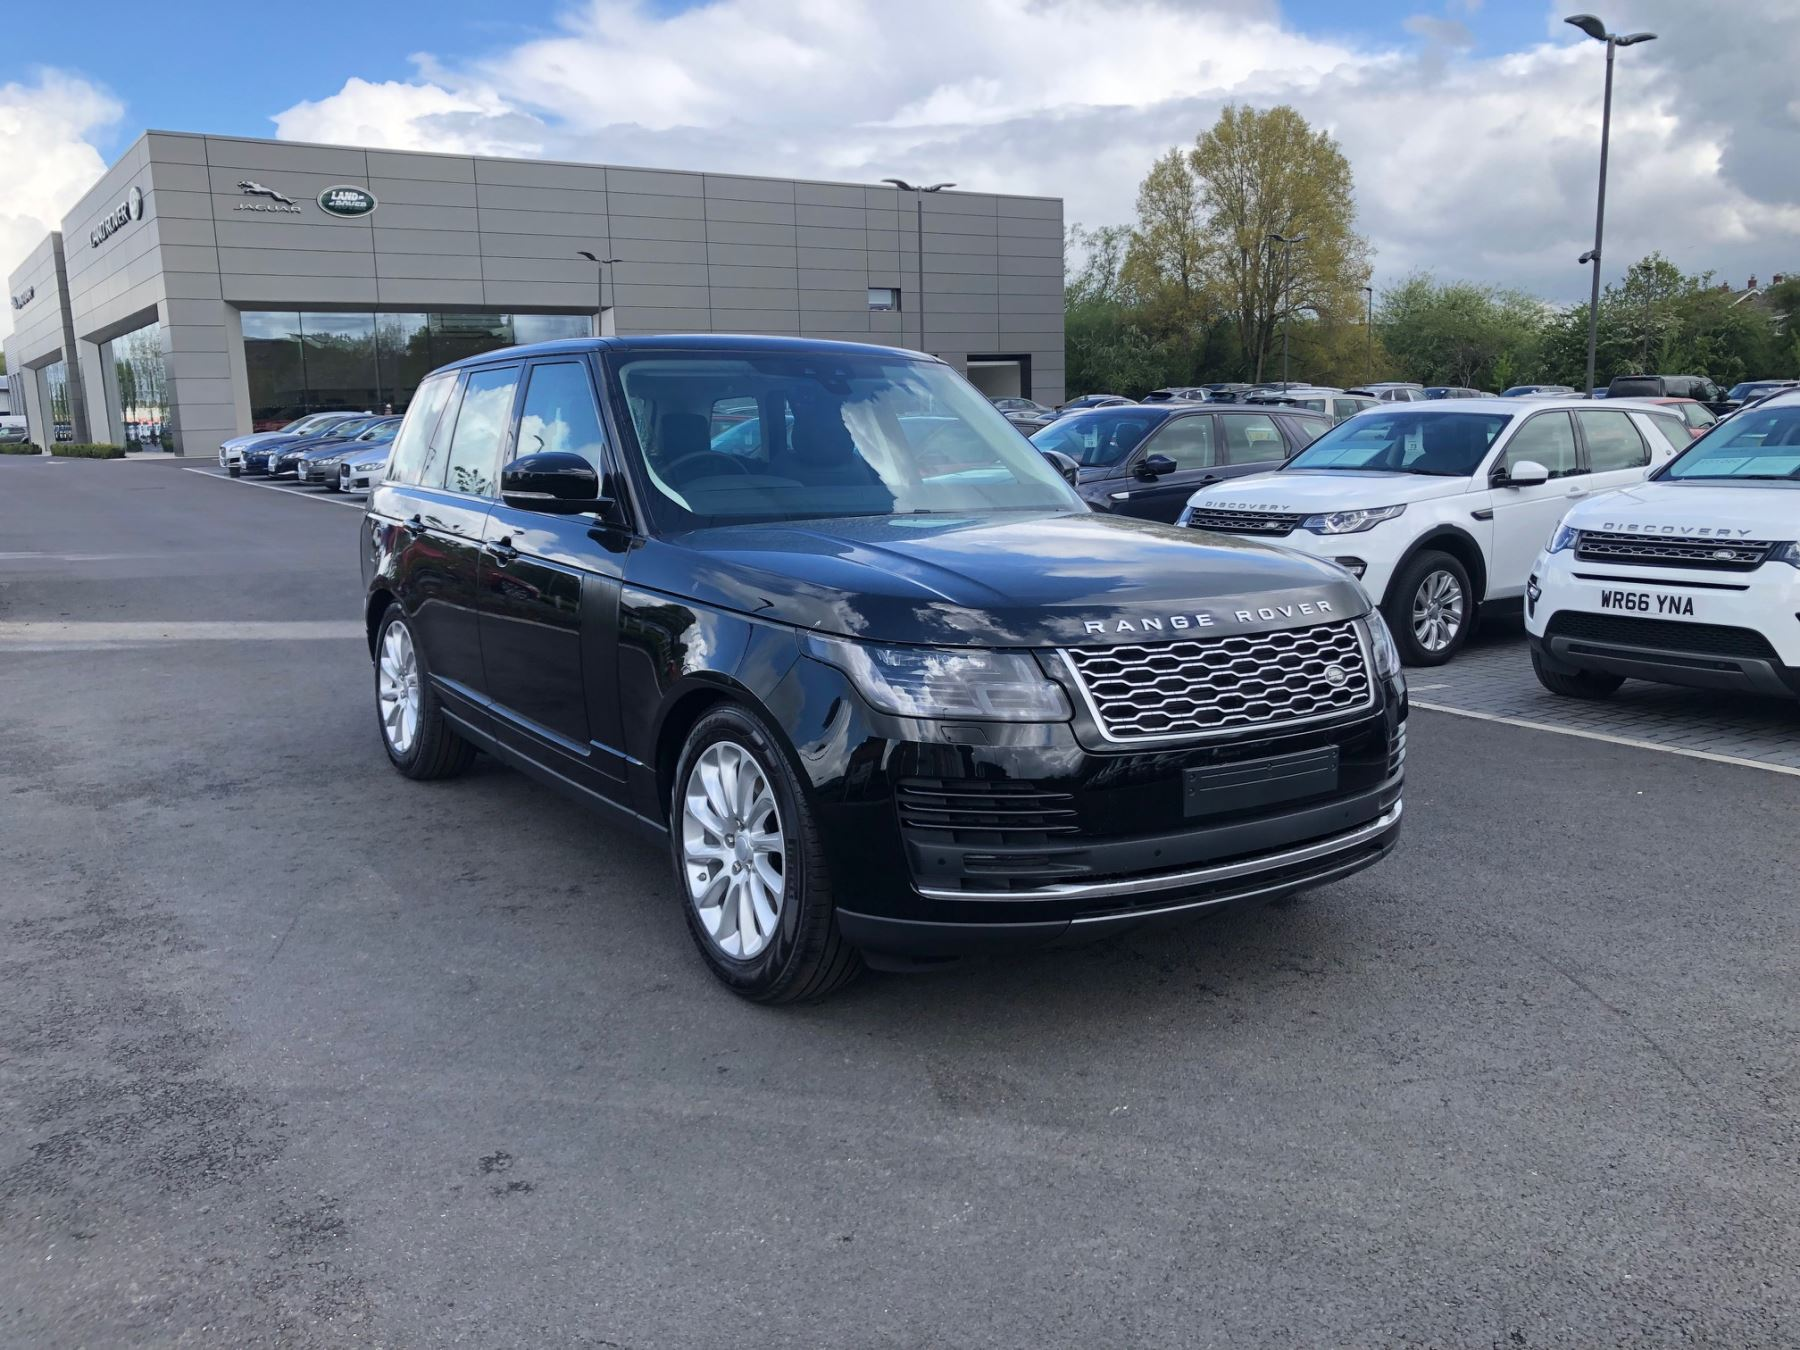 Land Rover Range Rover 3 0 SDV6 Vogue Diesel Automatic 4 door Estate (18MY)  available from Land Rover Woodford